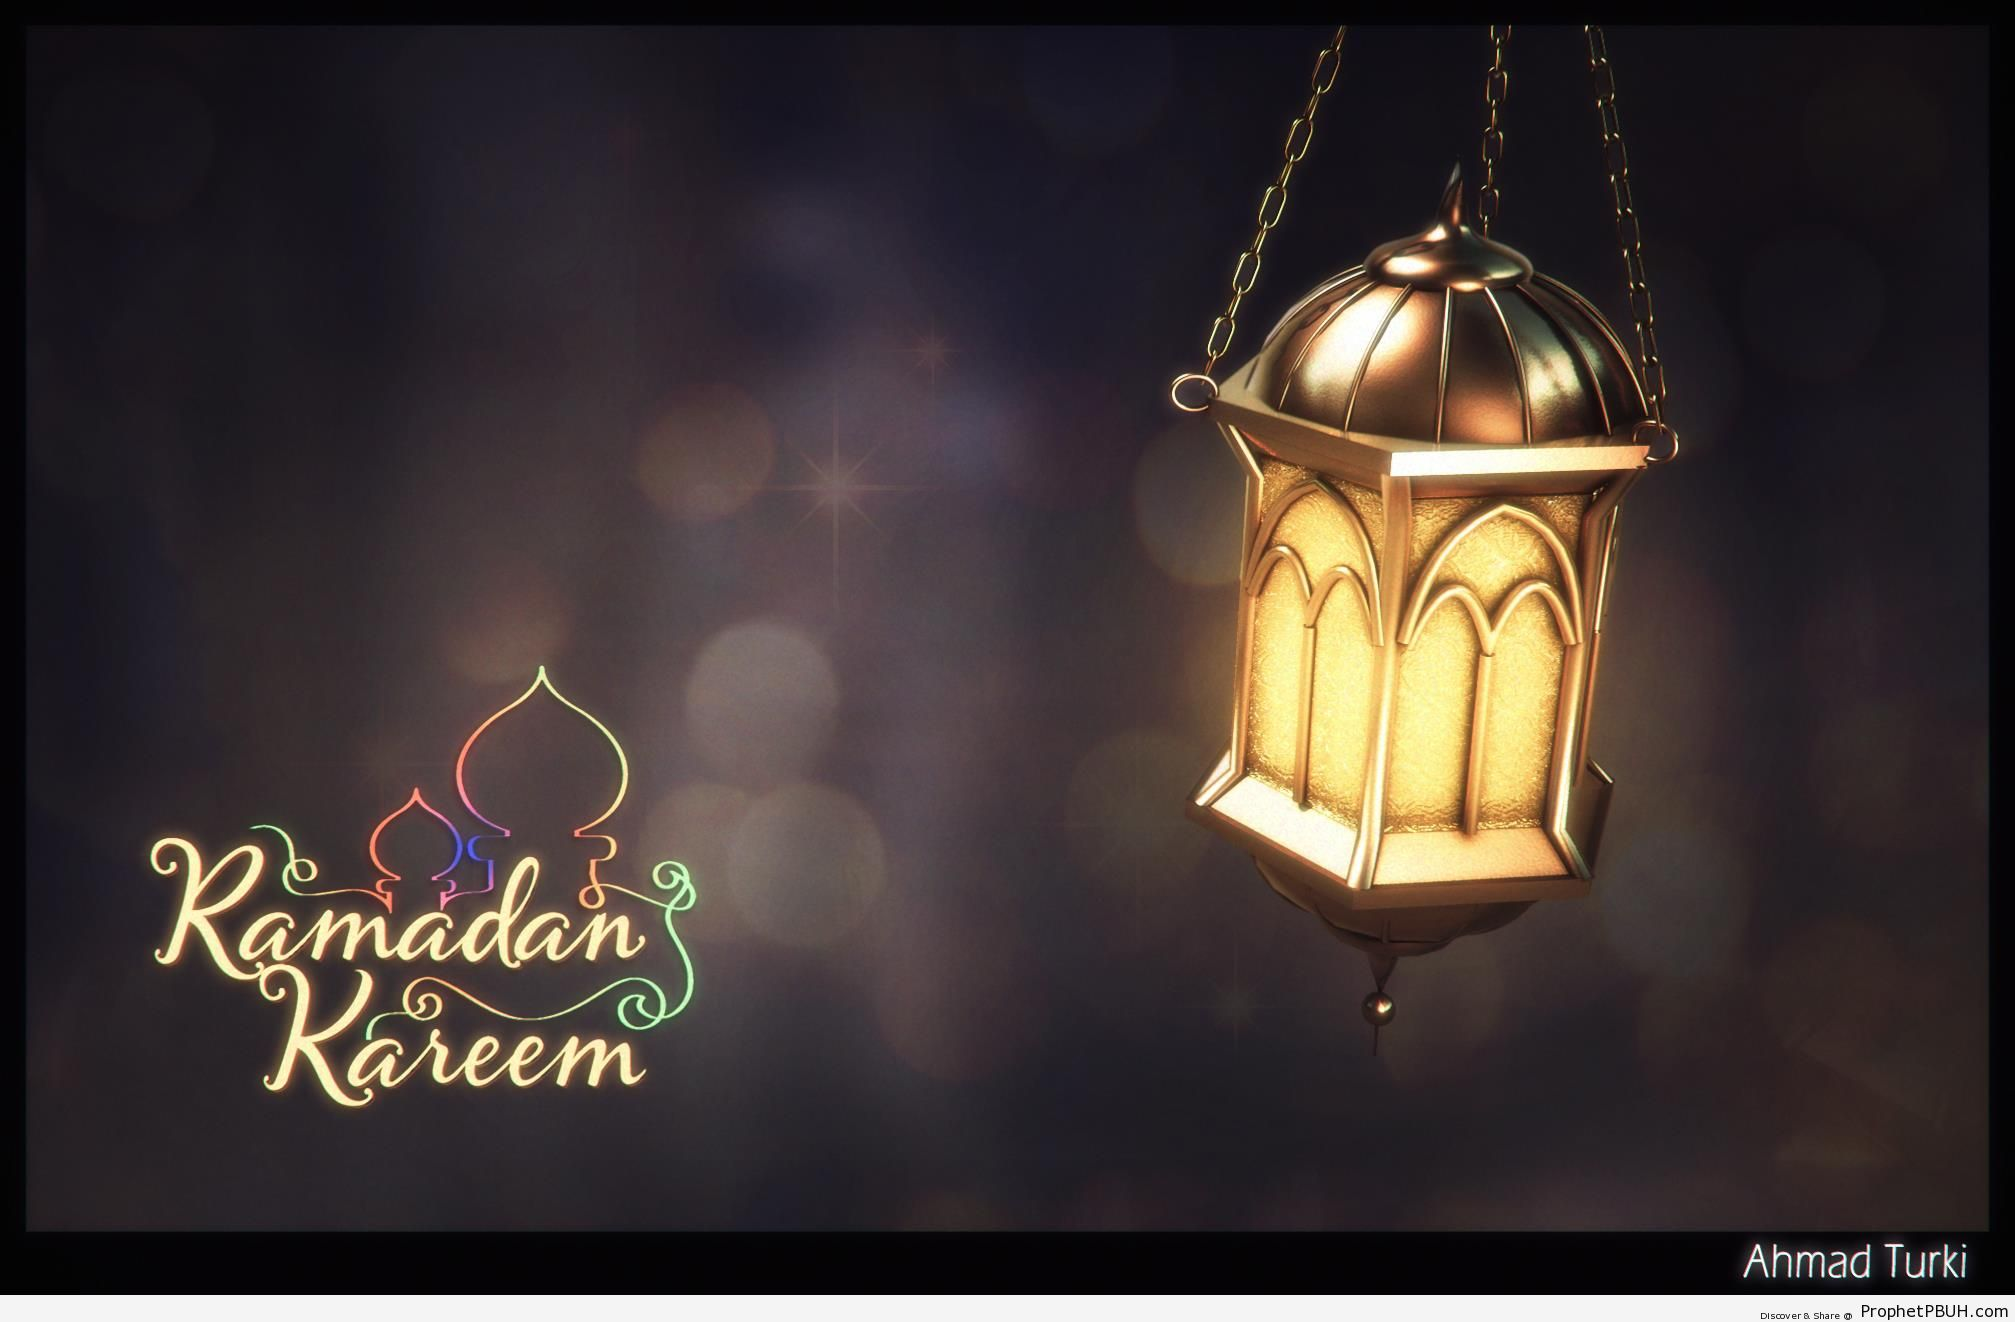 Ramadan Kareem With Arabian Lantern Islamic Greeting Cards And